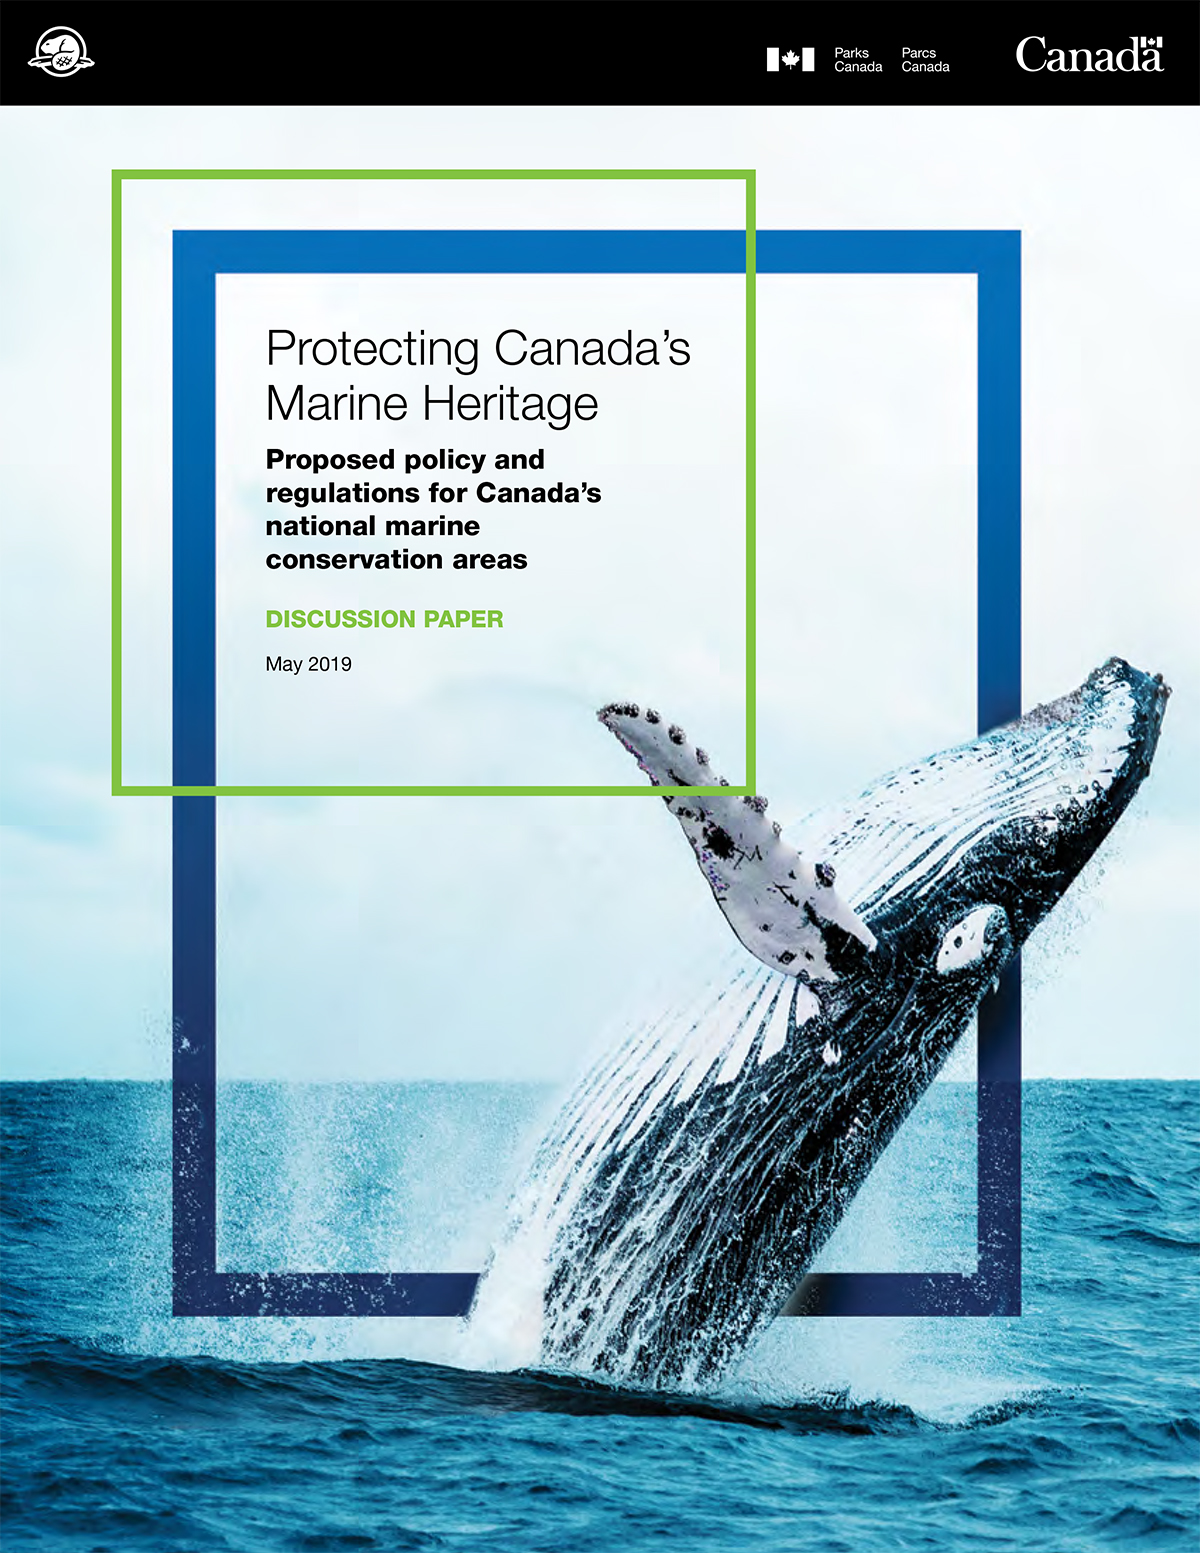 A whale breaching. Text: Protecting Canada's Marine Heritage - Proposed policy and regulations for Canada's conservation areas - Discussion paper - May 2019.